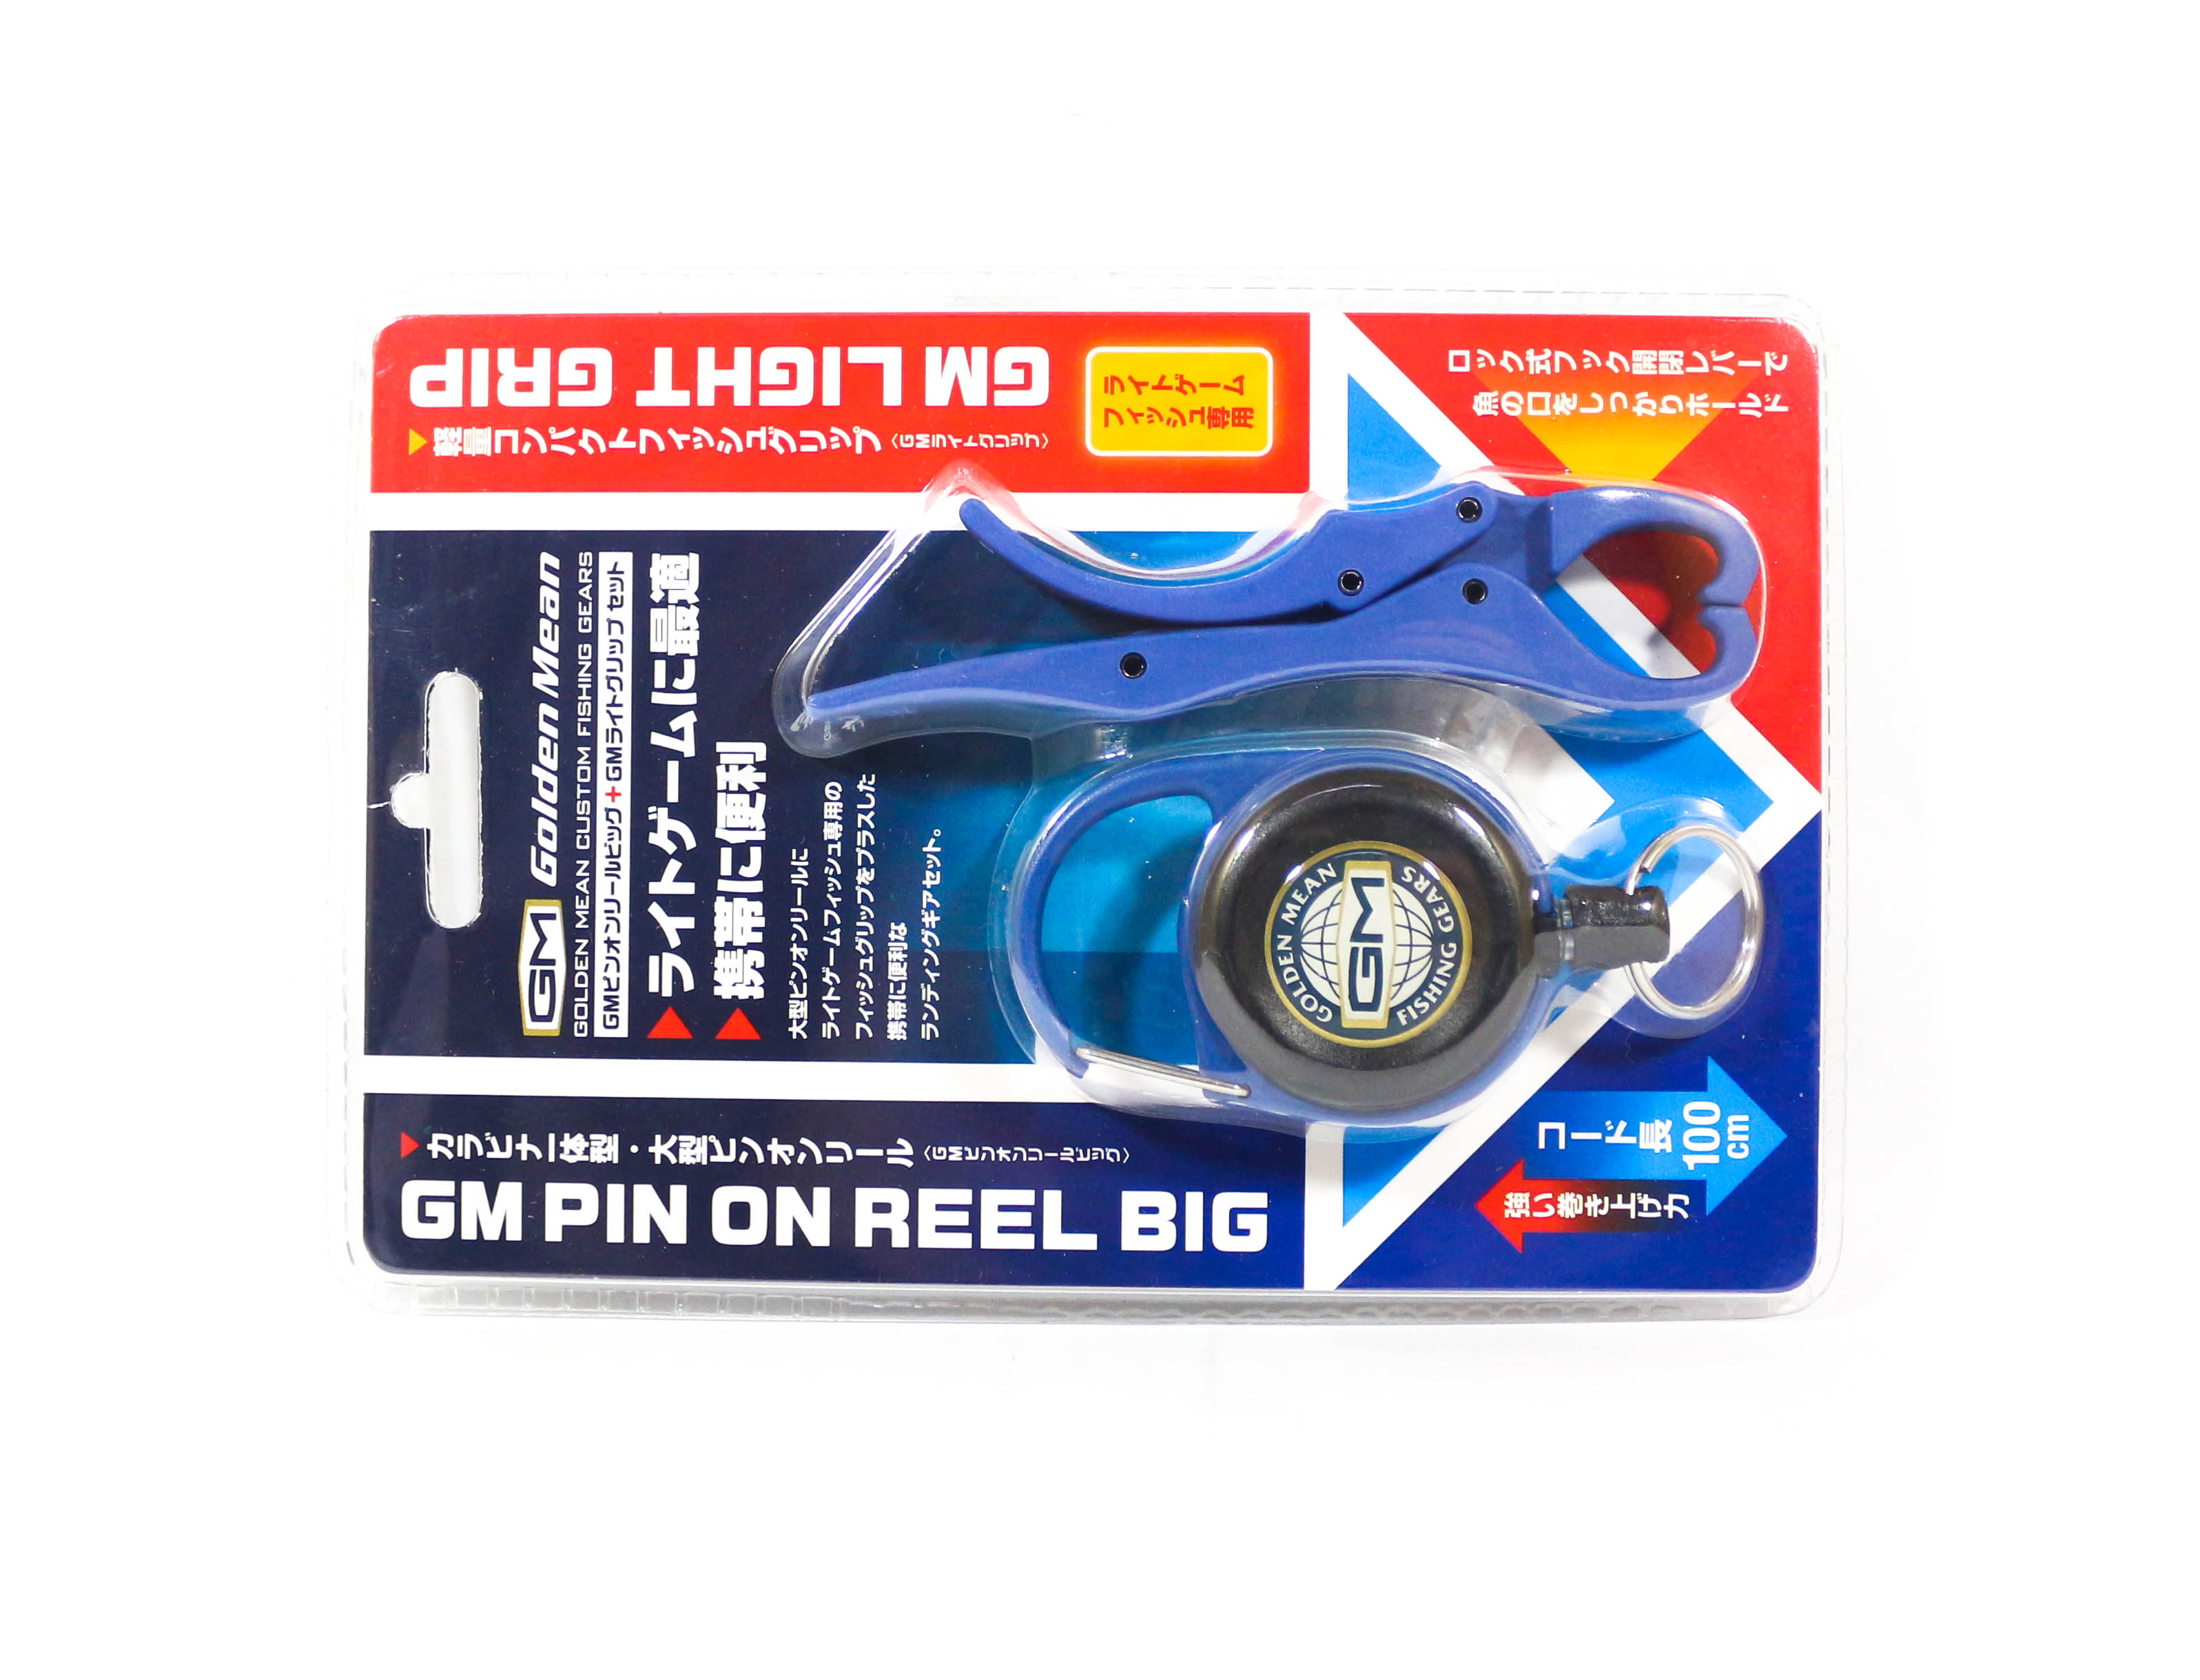 Golden Mean GM Pin on Reel Big Carabina 100cm with Light Grip Blue (6235)